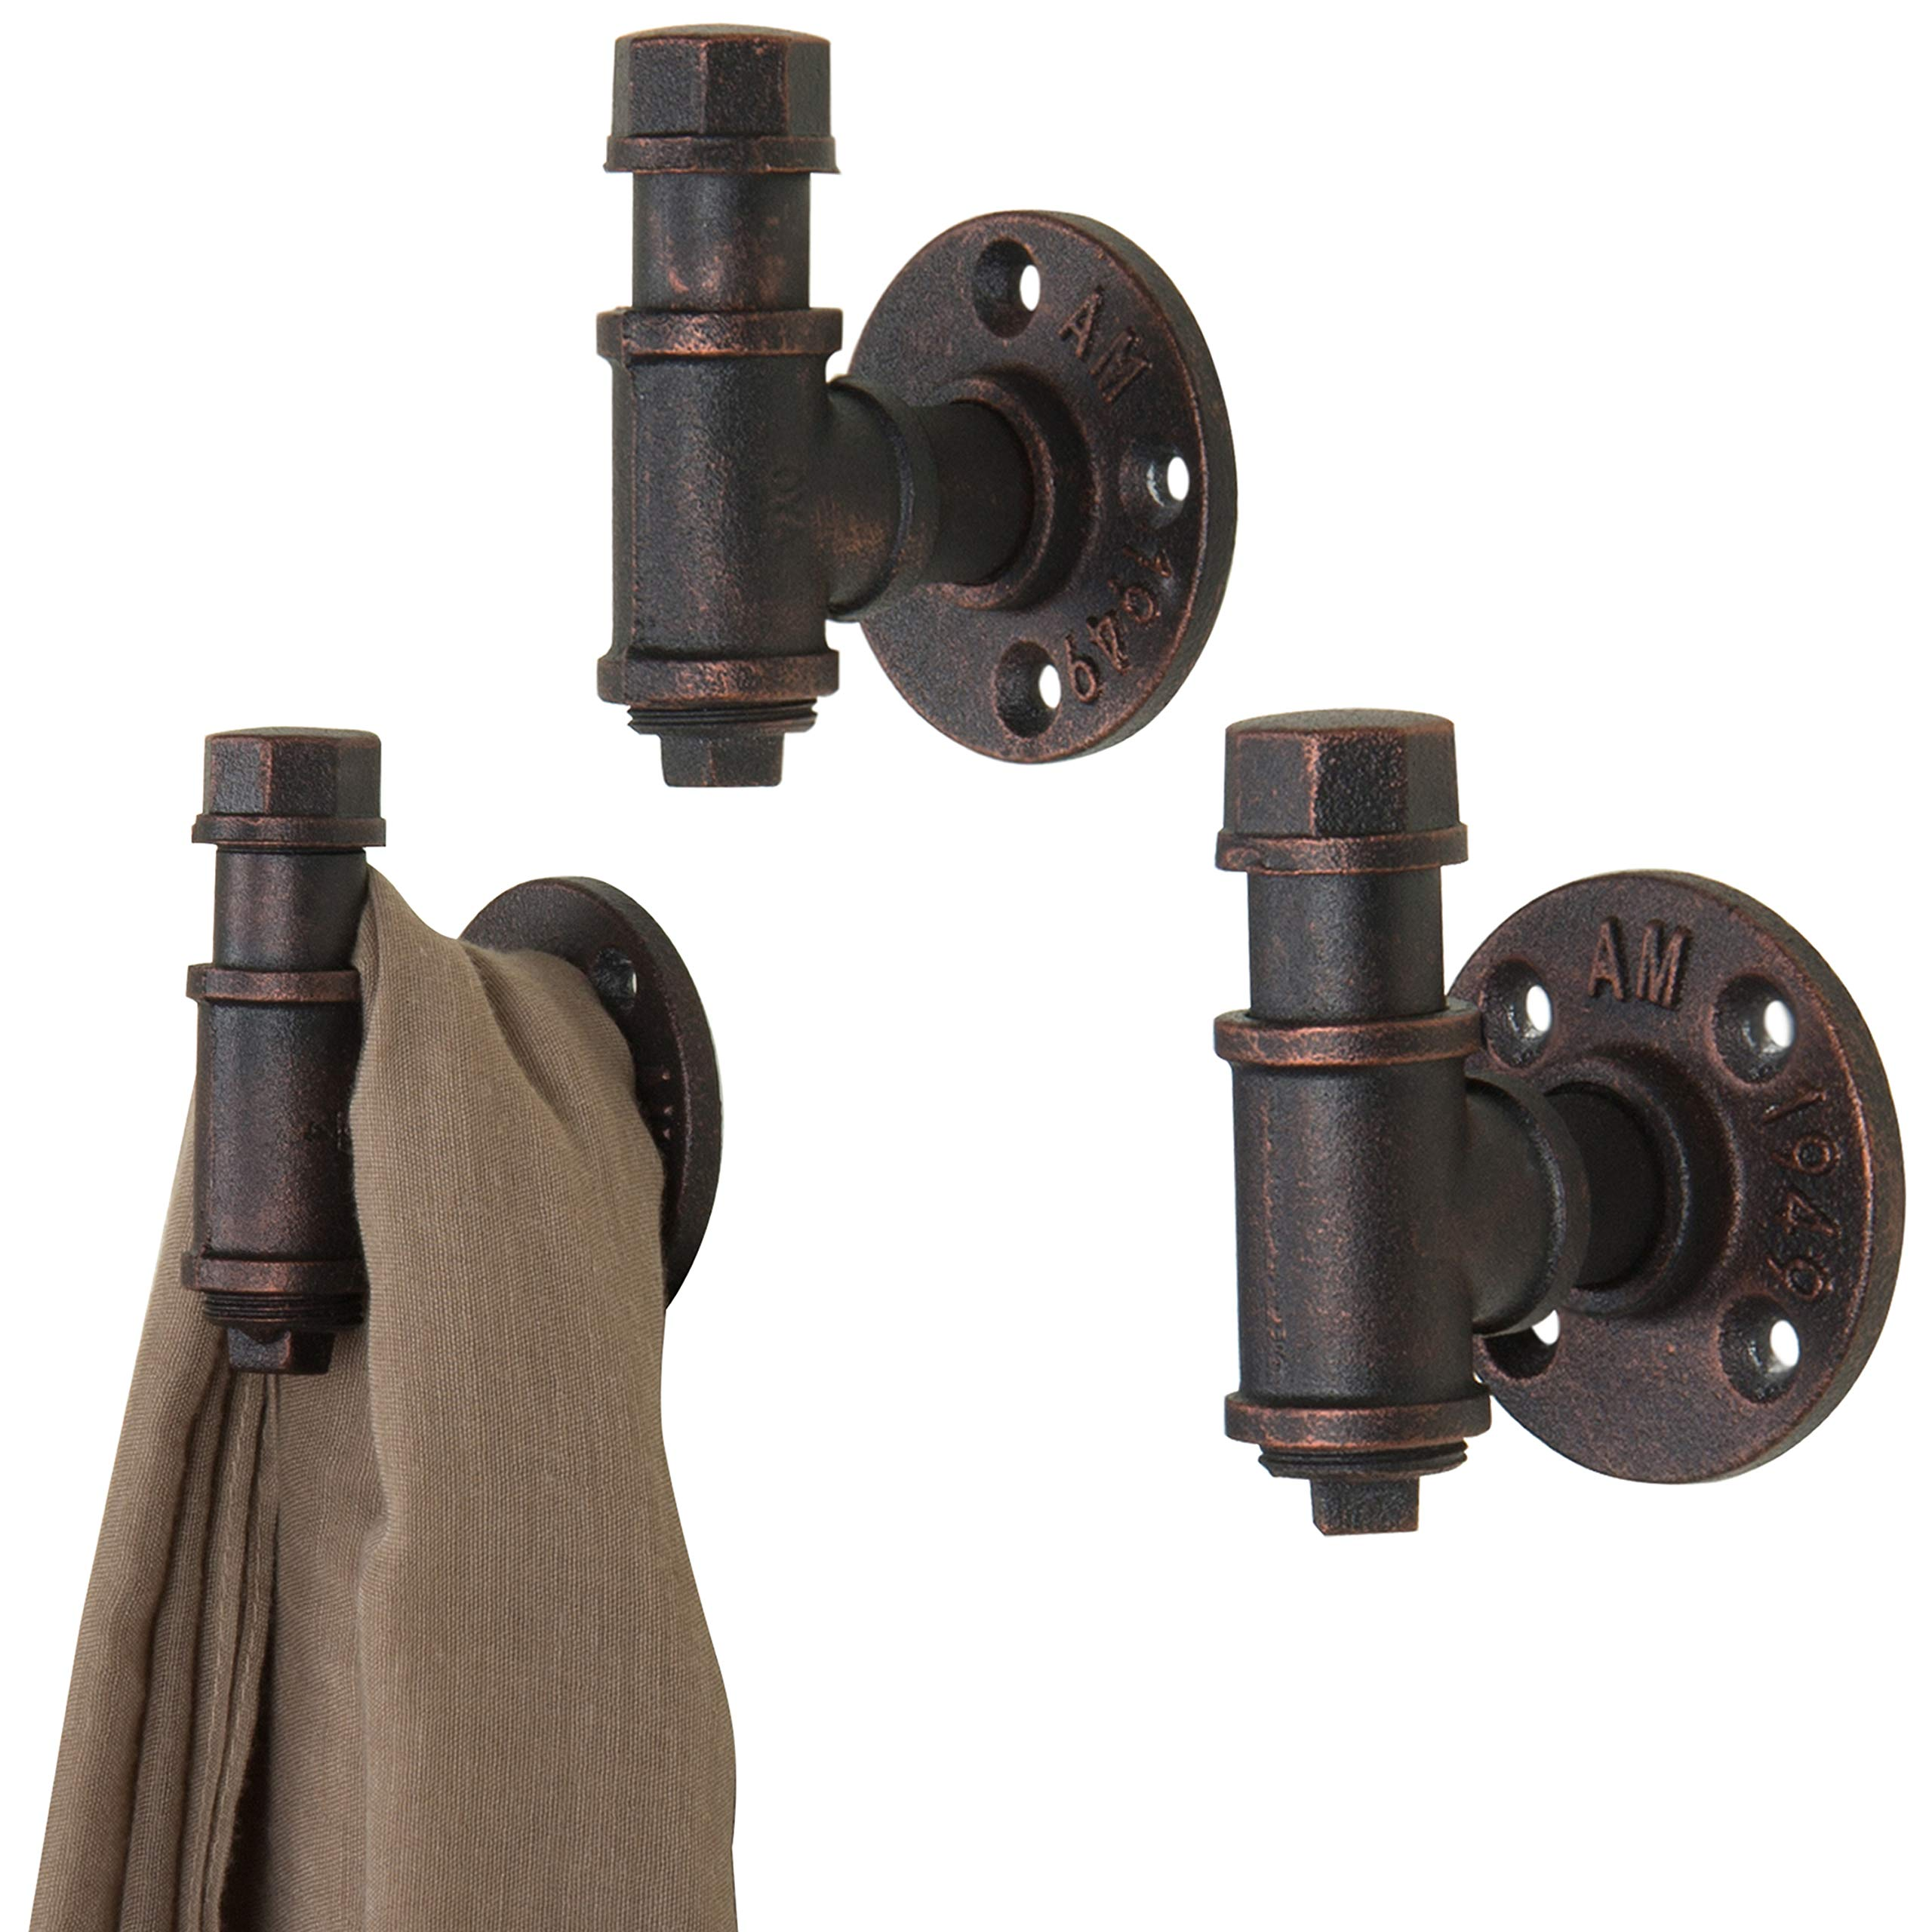 Industrial Pipe Decor Coat Hook Set of 2 Electroplated Black Finish for Entryway Heavy Duty Wall Mounted 1//2 Threaded Floor Flanges Fittings and Elbows Rustic Metal Iron Two Floating Hooks Kit 1//2 Threaded Floor Flanges Fittings and Elbows LDR